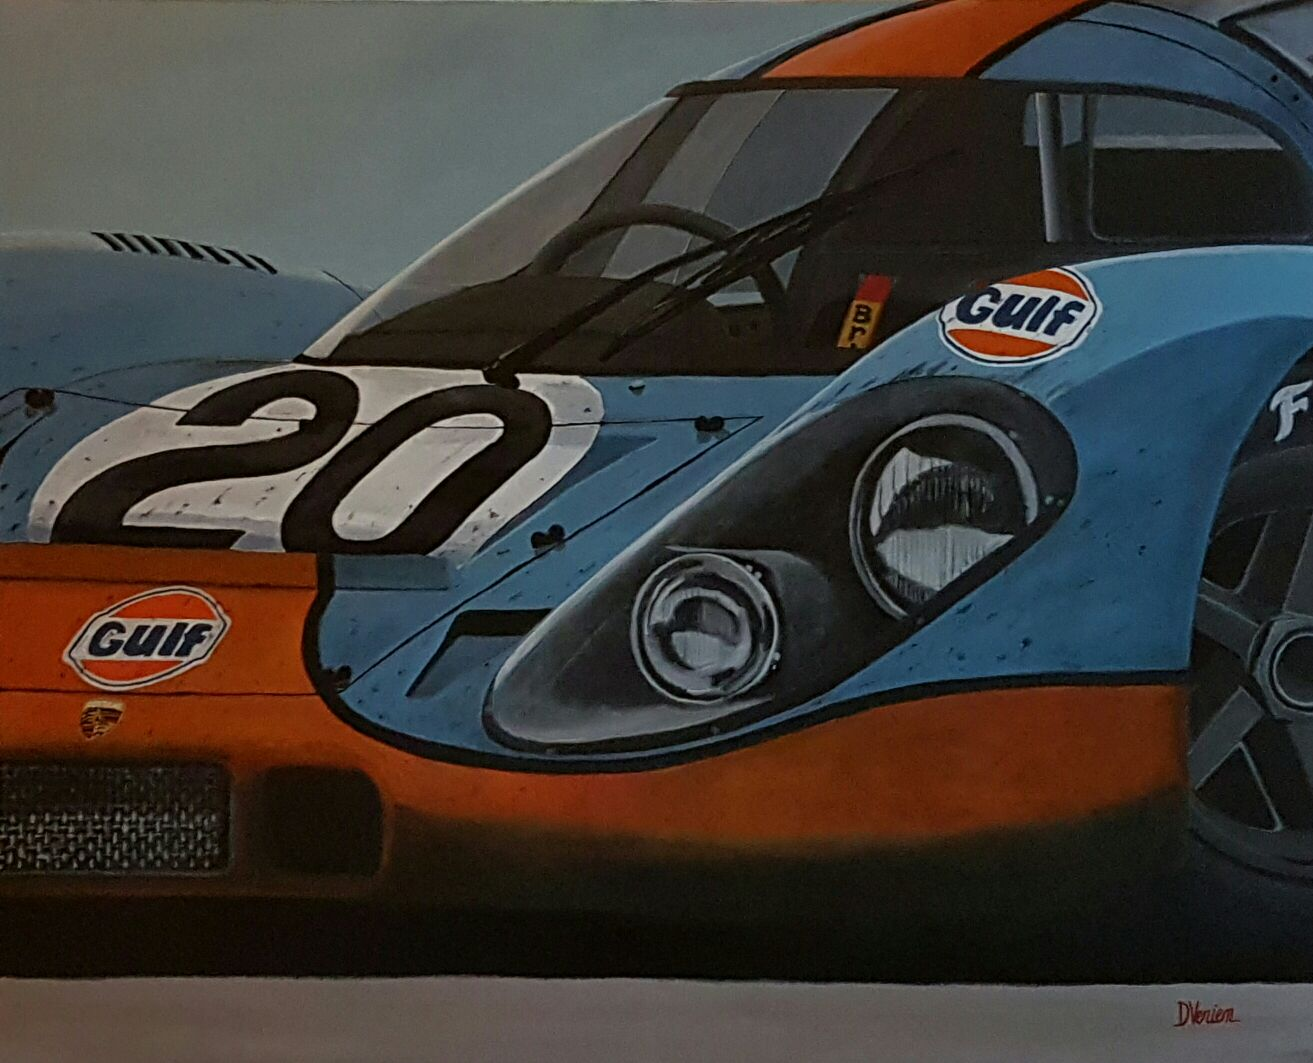 Porsche 917 Le Mans 1970, Porsche 917 Gulf, gallery race cars paintings